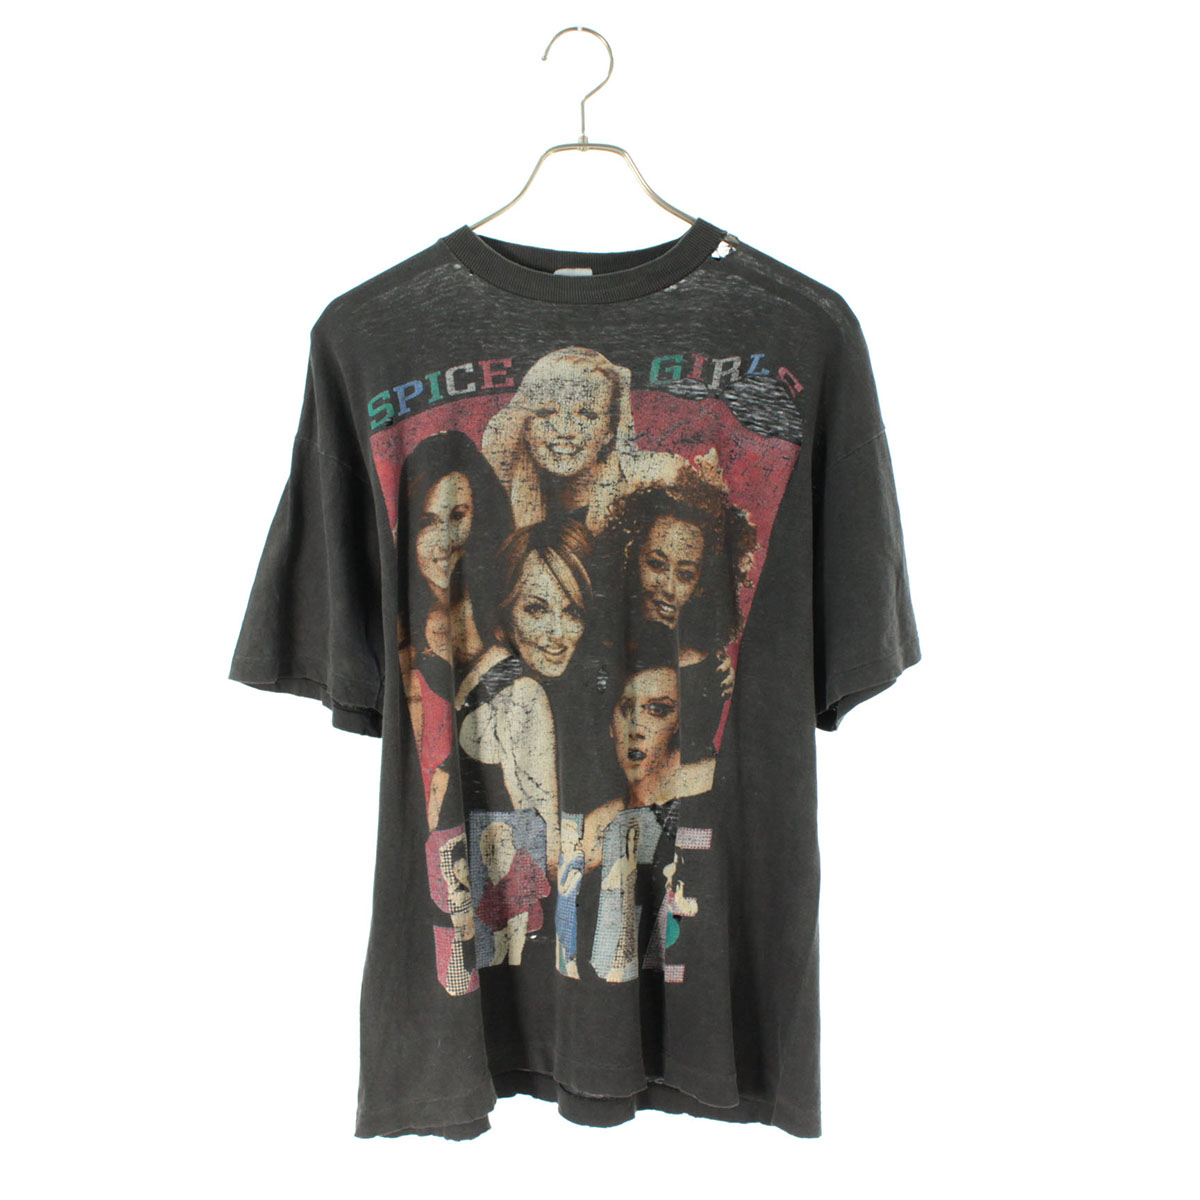 SPICE GIRLS BOOT TEE 90s as-is